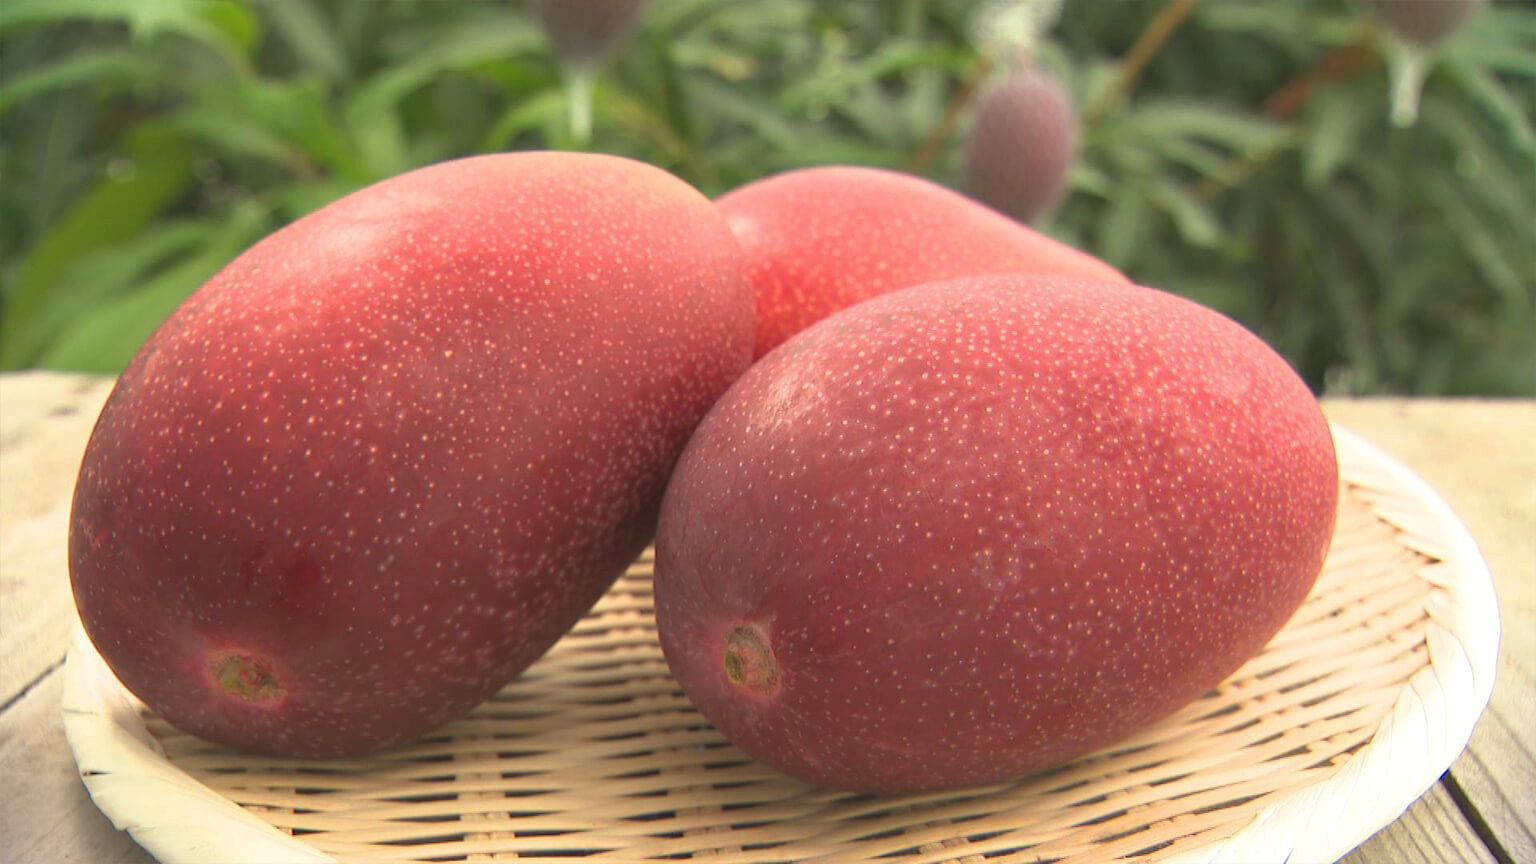 Today, we focus on the king of fruit, mango. Though often thought of as a tropical fruit, they are also grown in Japan. Large, delic… | Mango, Tropical fruit, Fruit